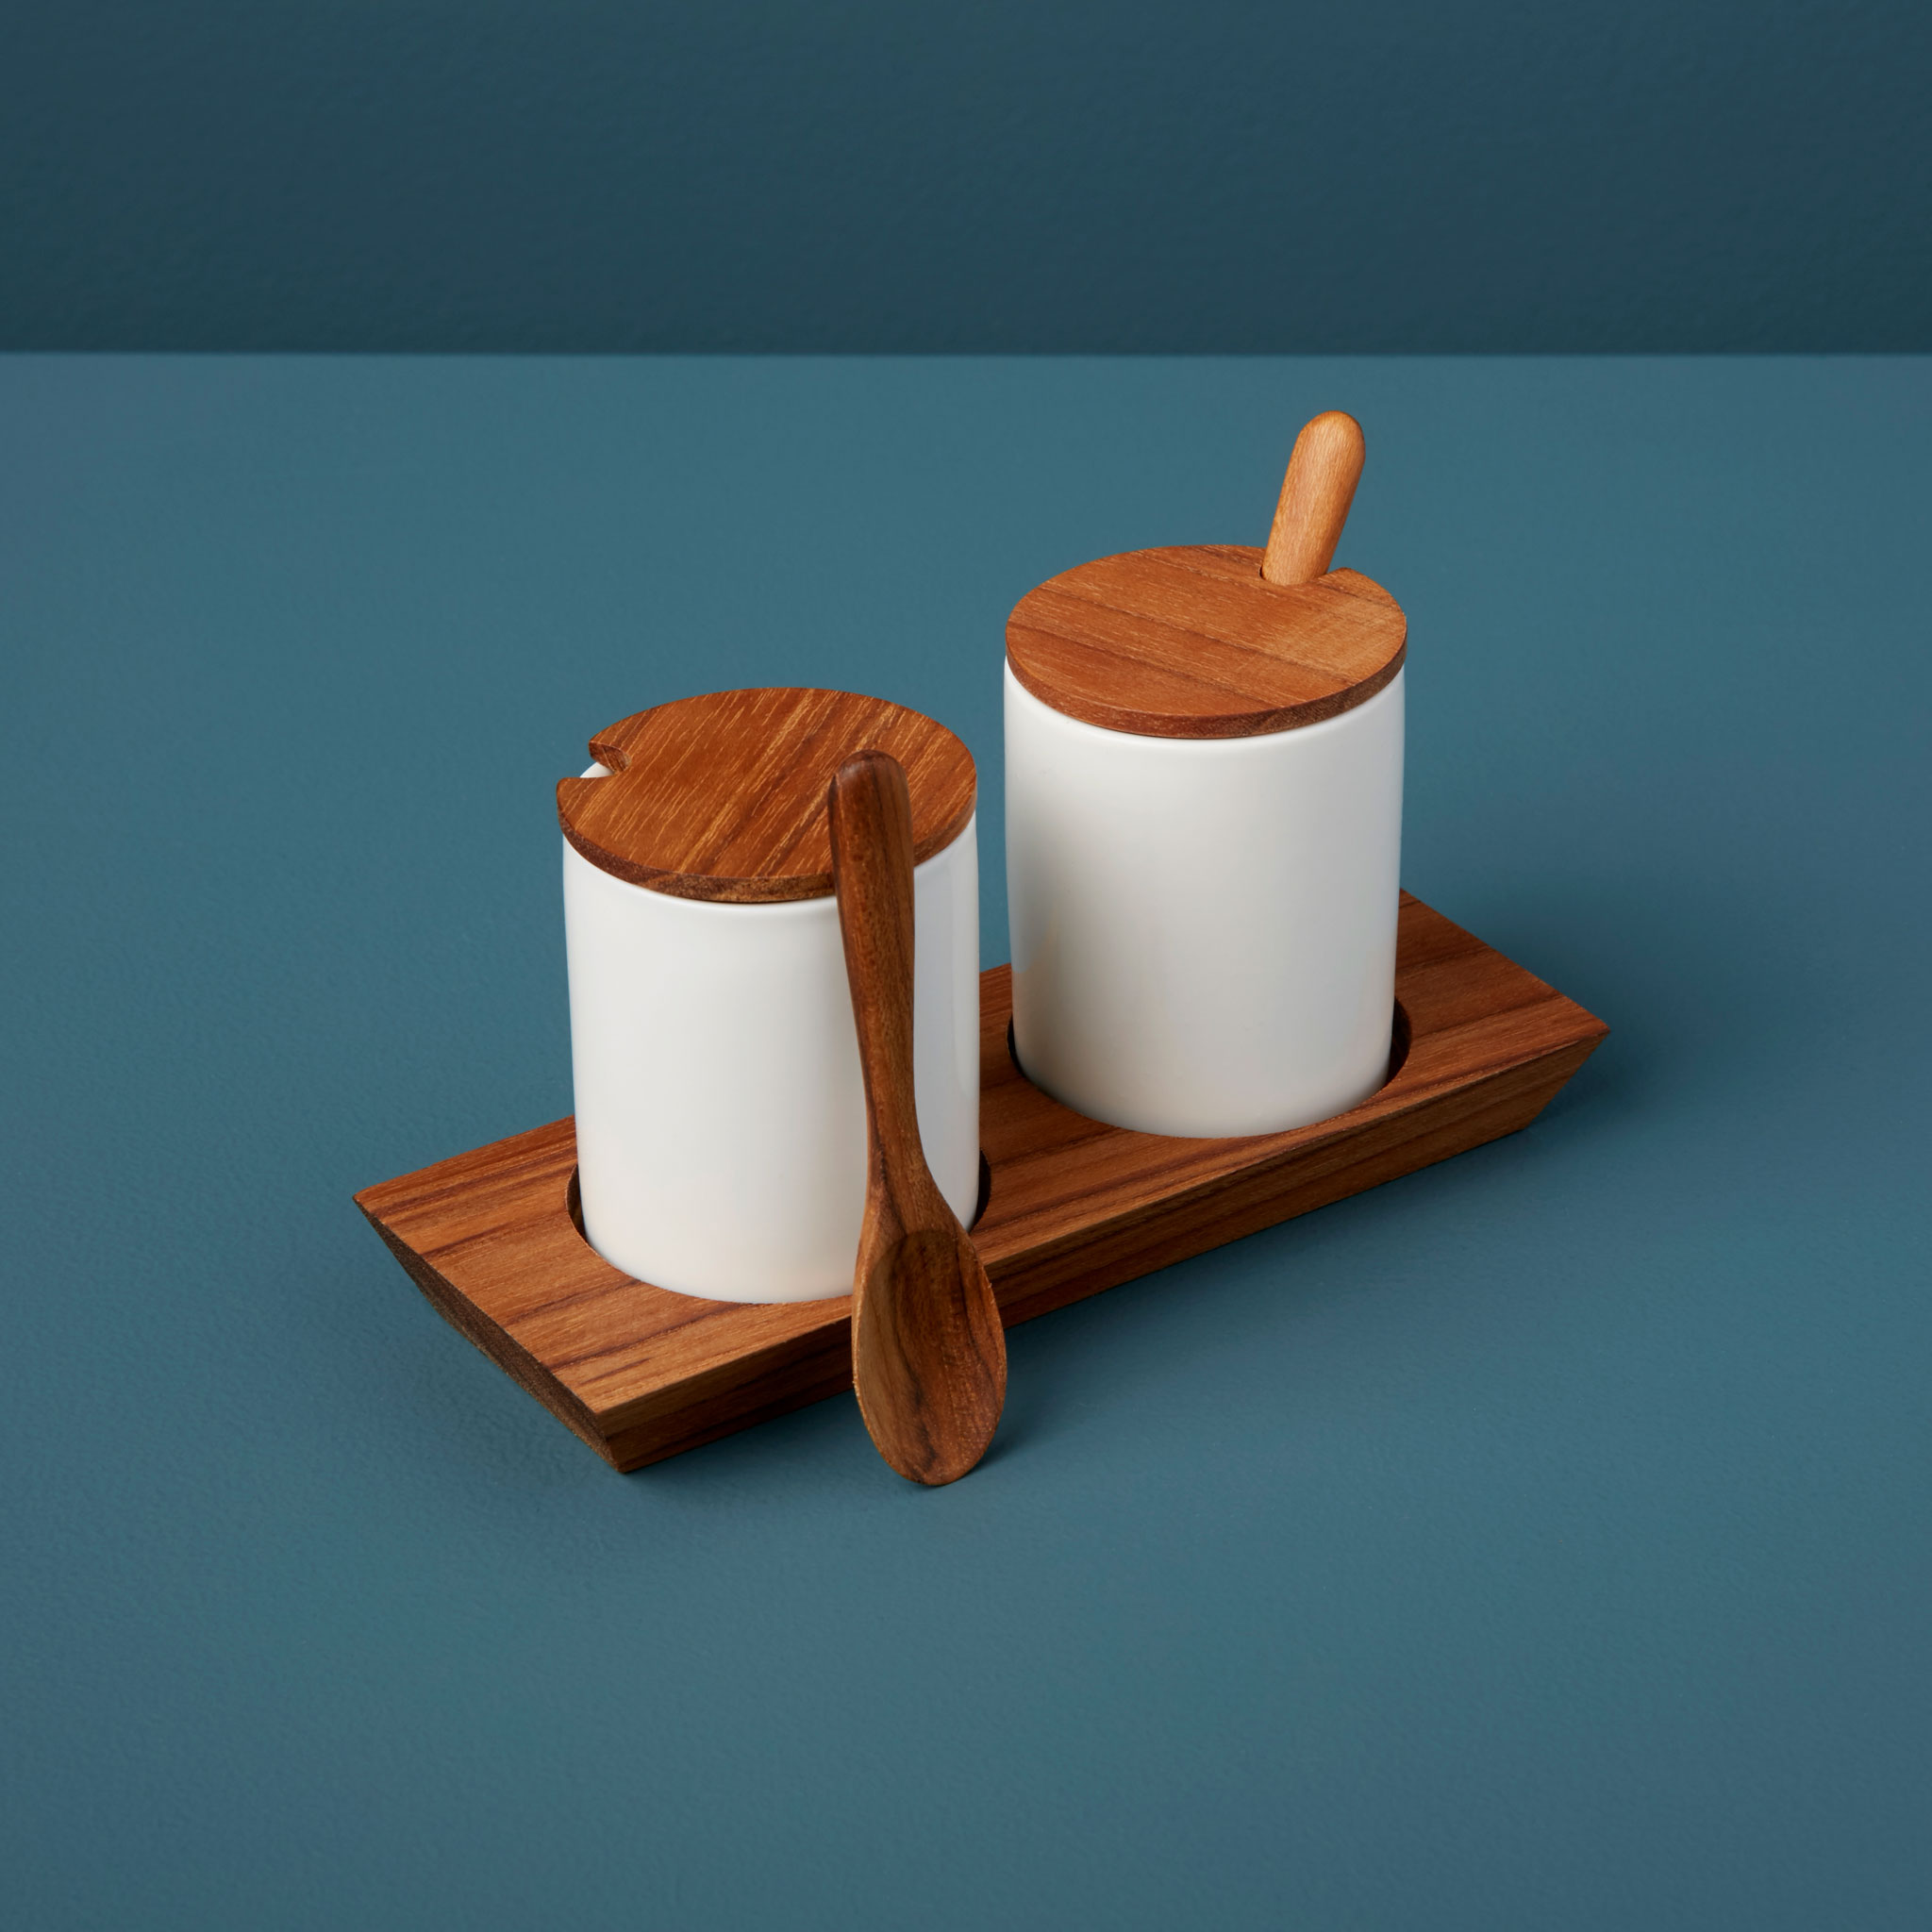 Be-Home_Teak-Tray-with-Ceramic-Mini-Cellars-with-Teak-Lid-and-Spoon_390-122